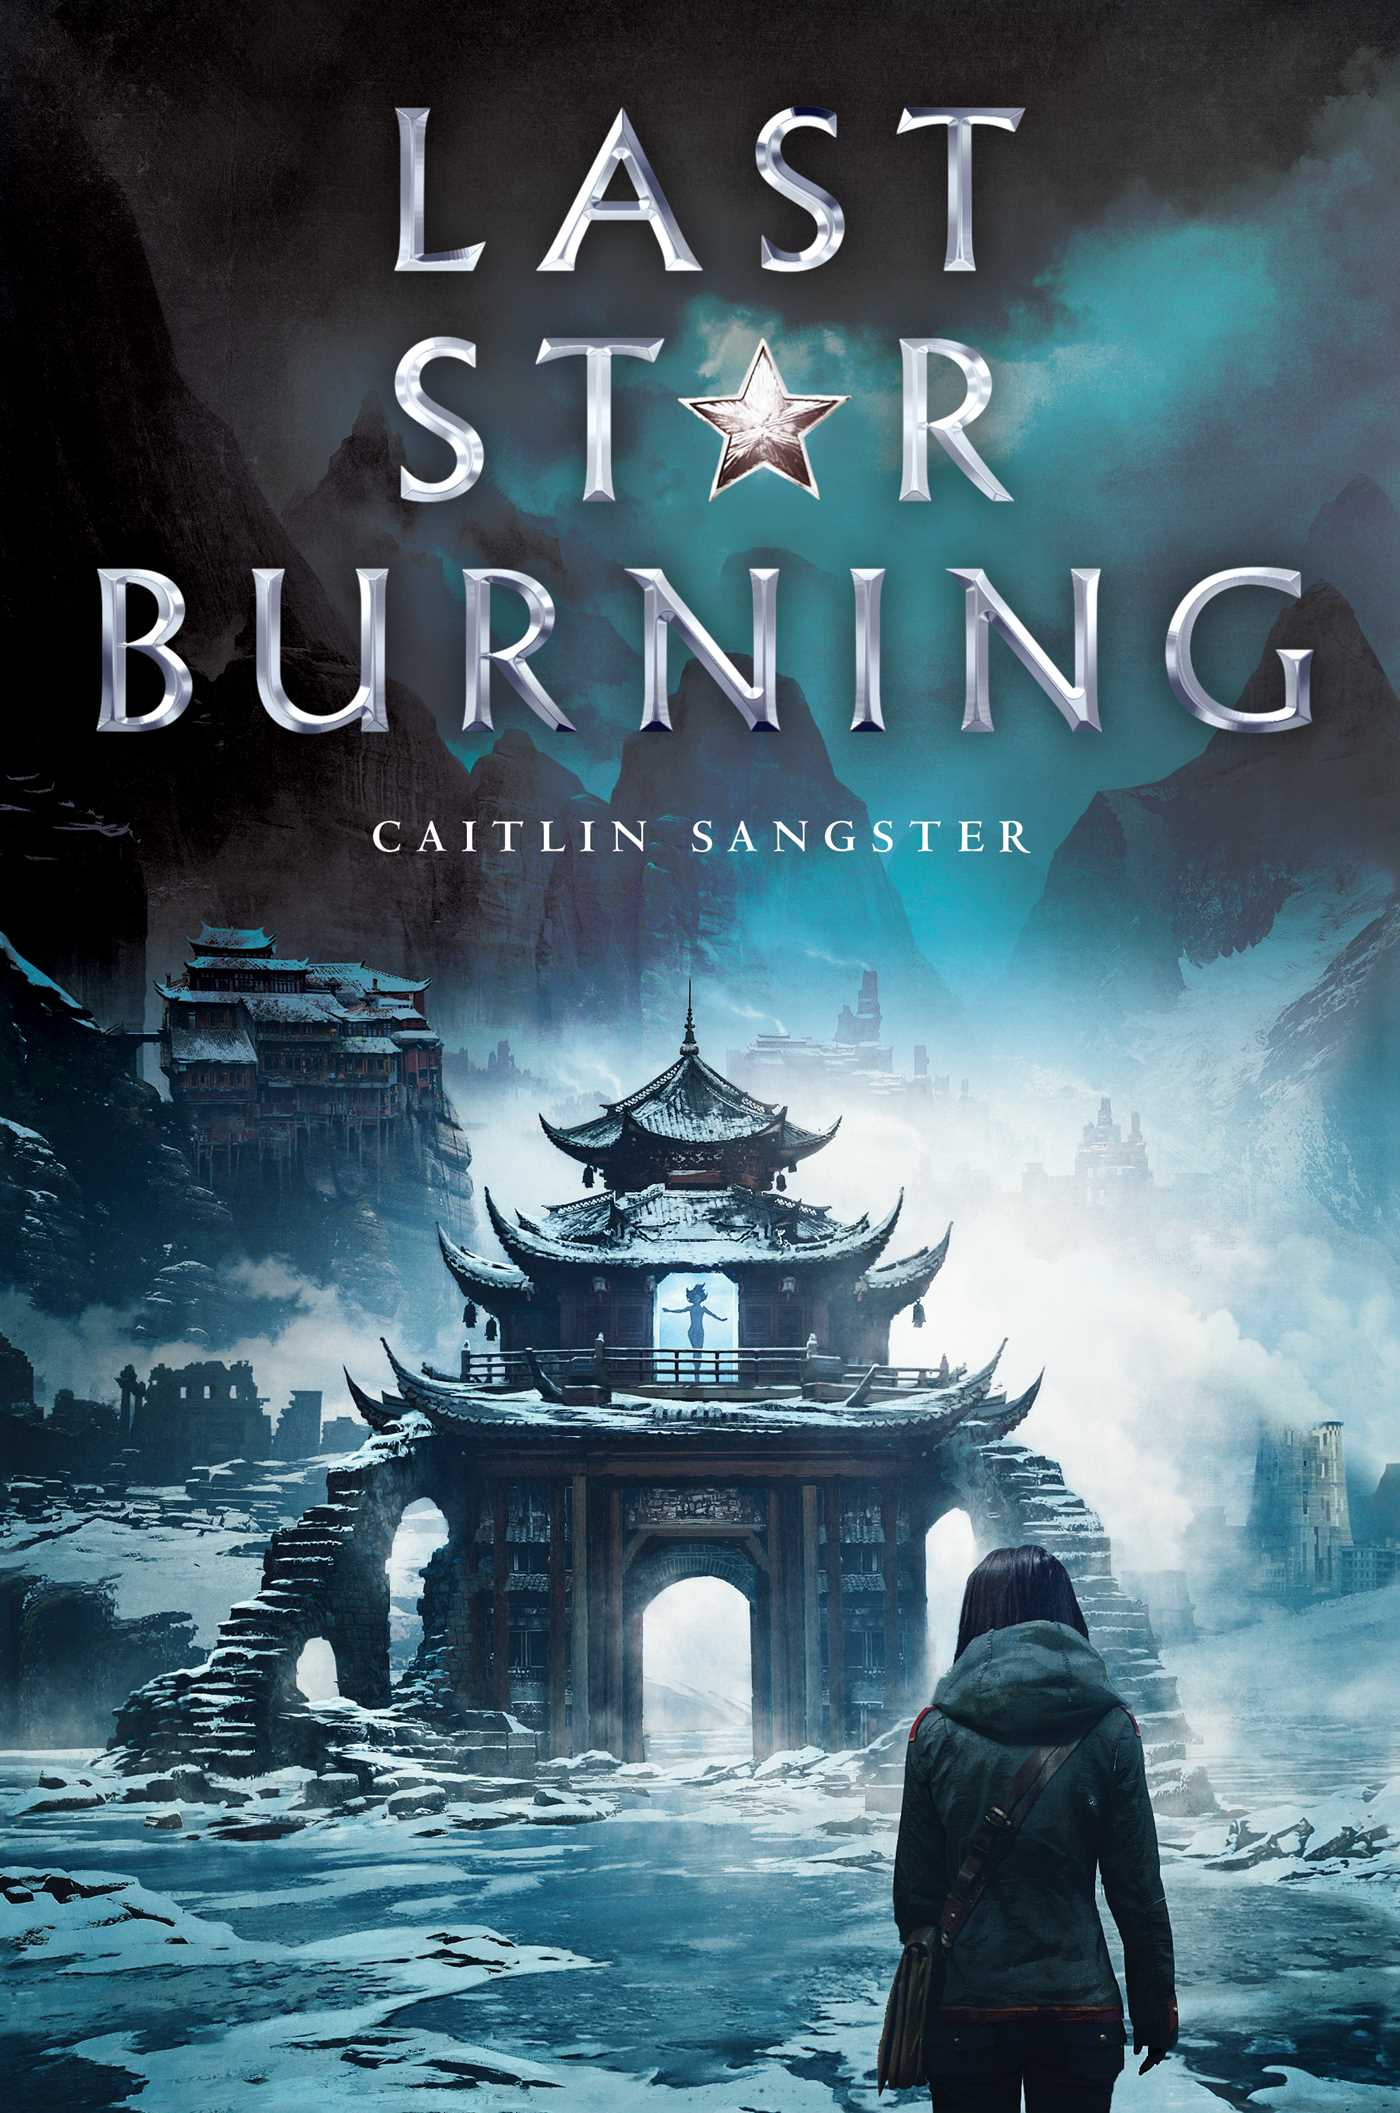 Last Star Burning by Caitlin Sangster